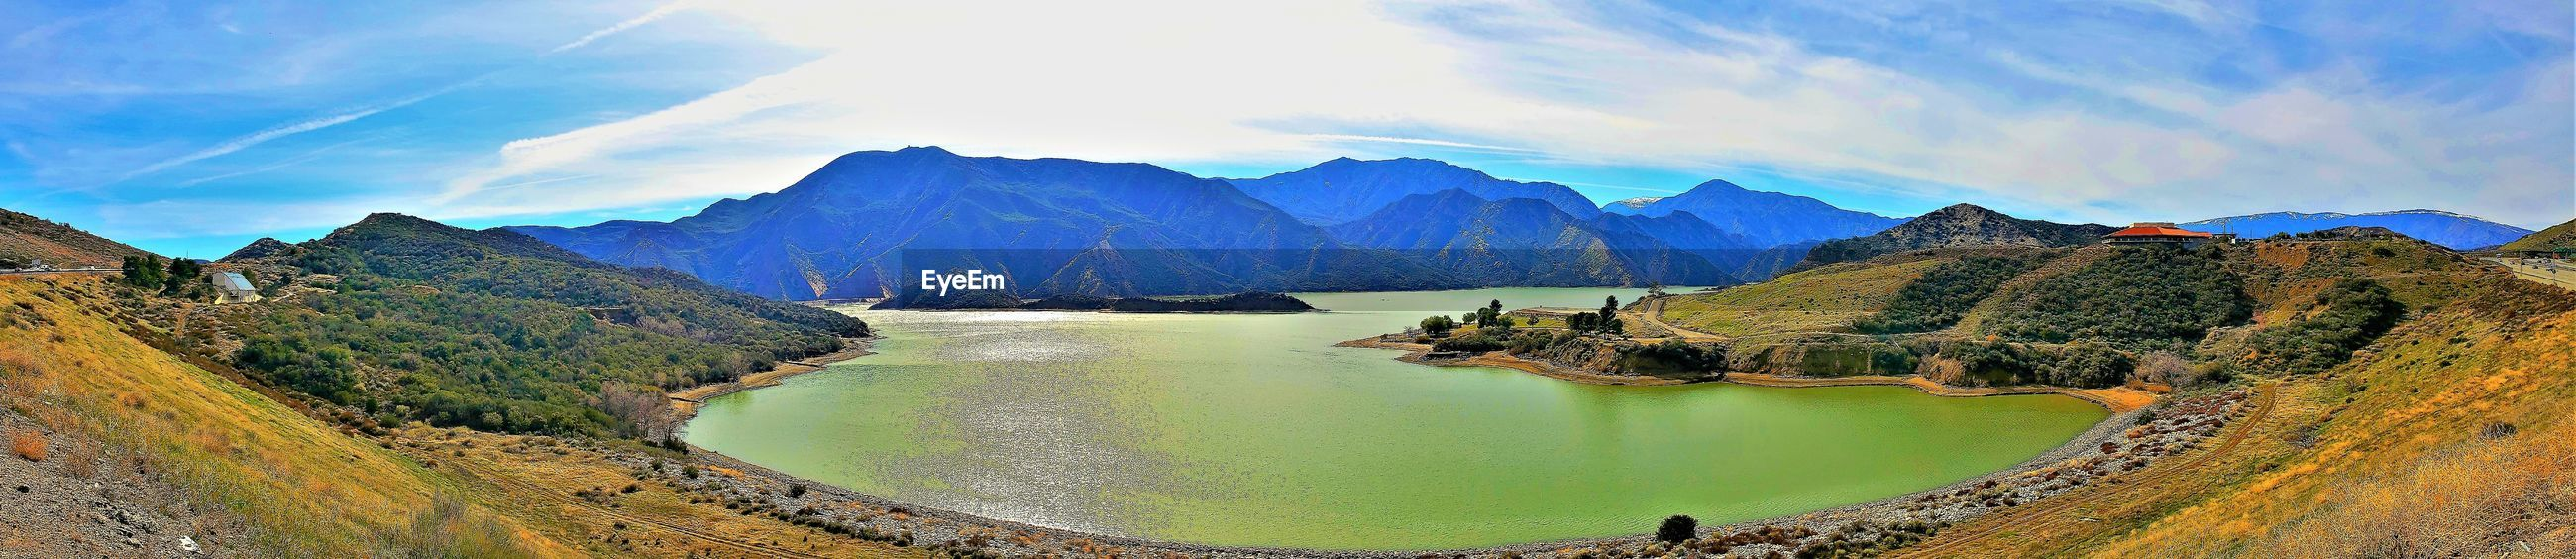 PANORAMIC VIEW OF LAKE AND MOUNTAIN AGAINST SKY